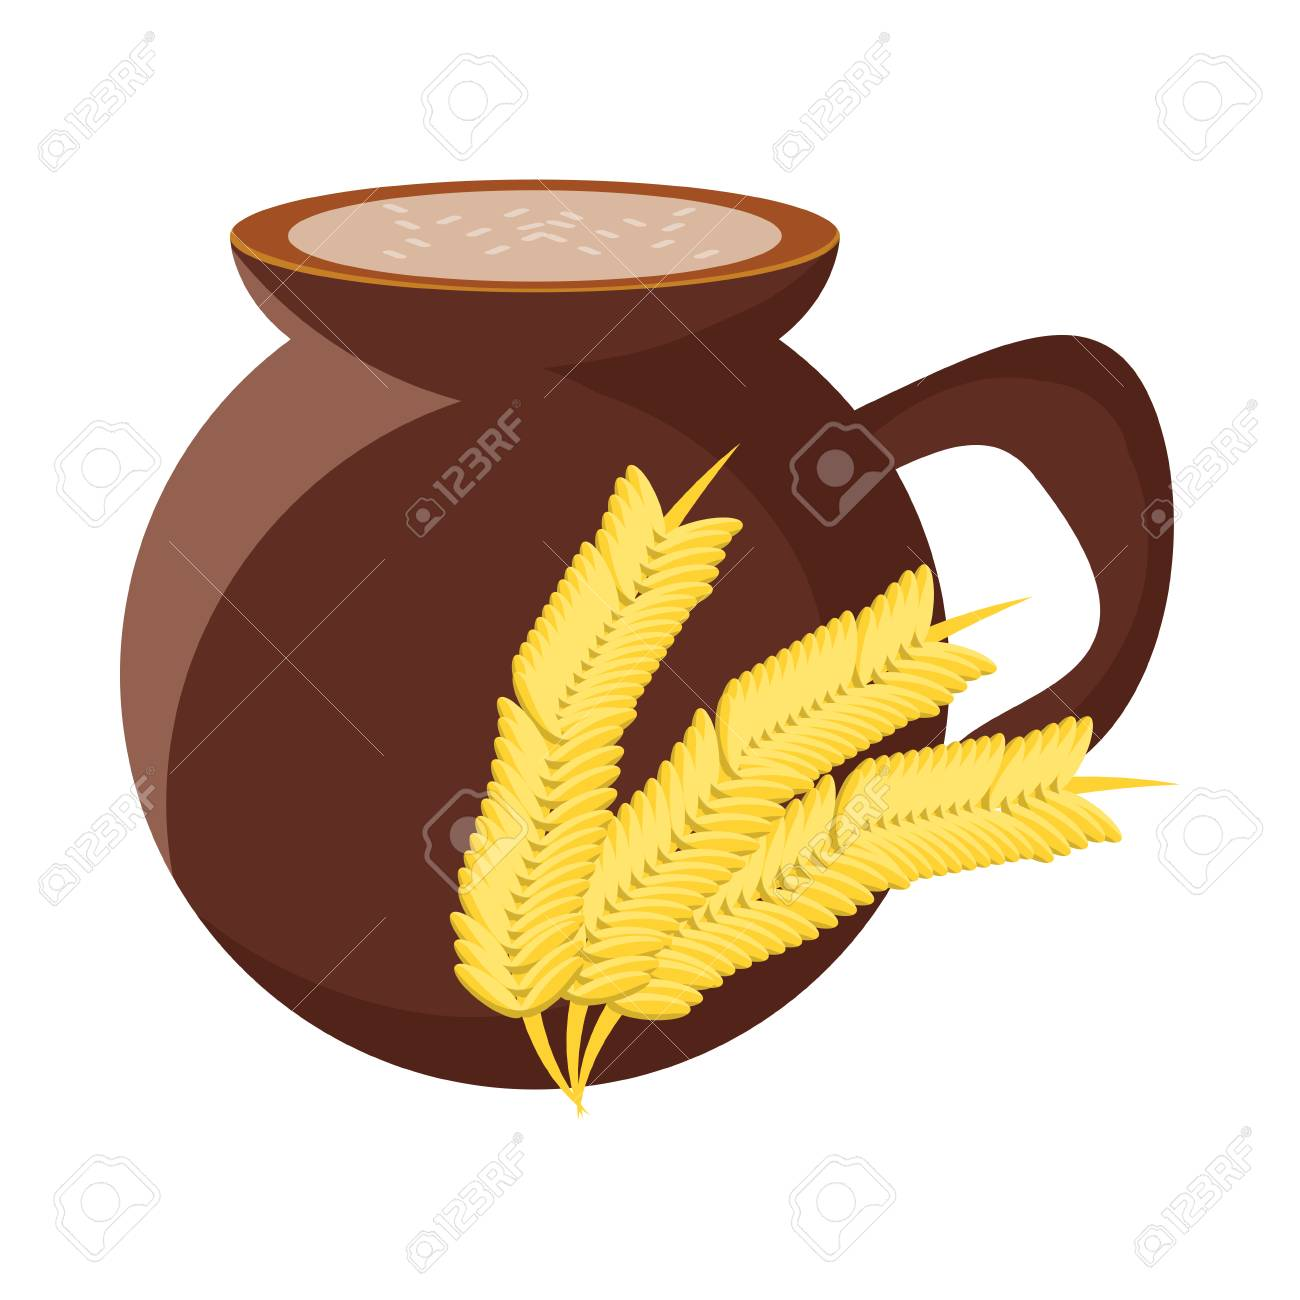 mexican atole drink, pot and wheat ears icon over white background, vector illustration - 99257440